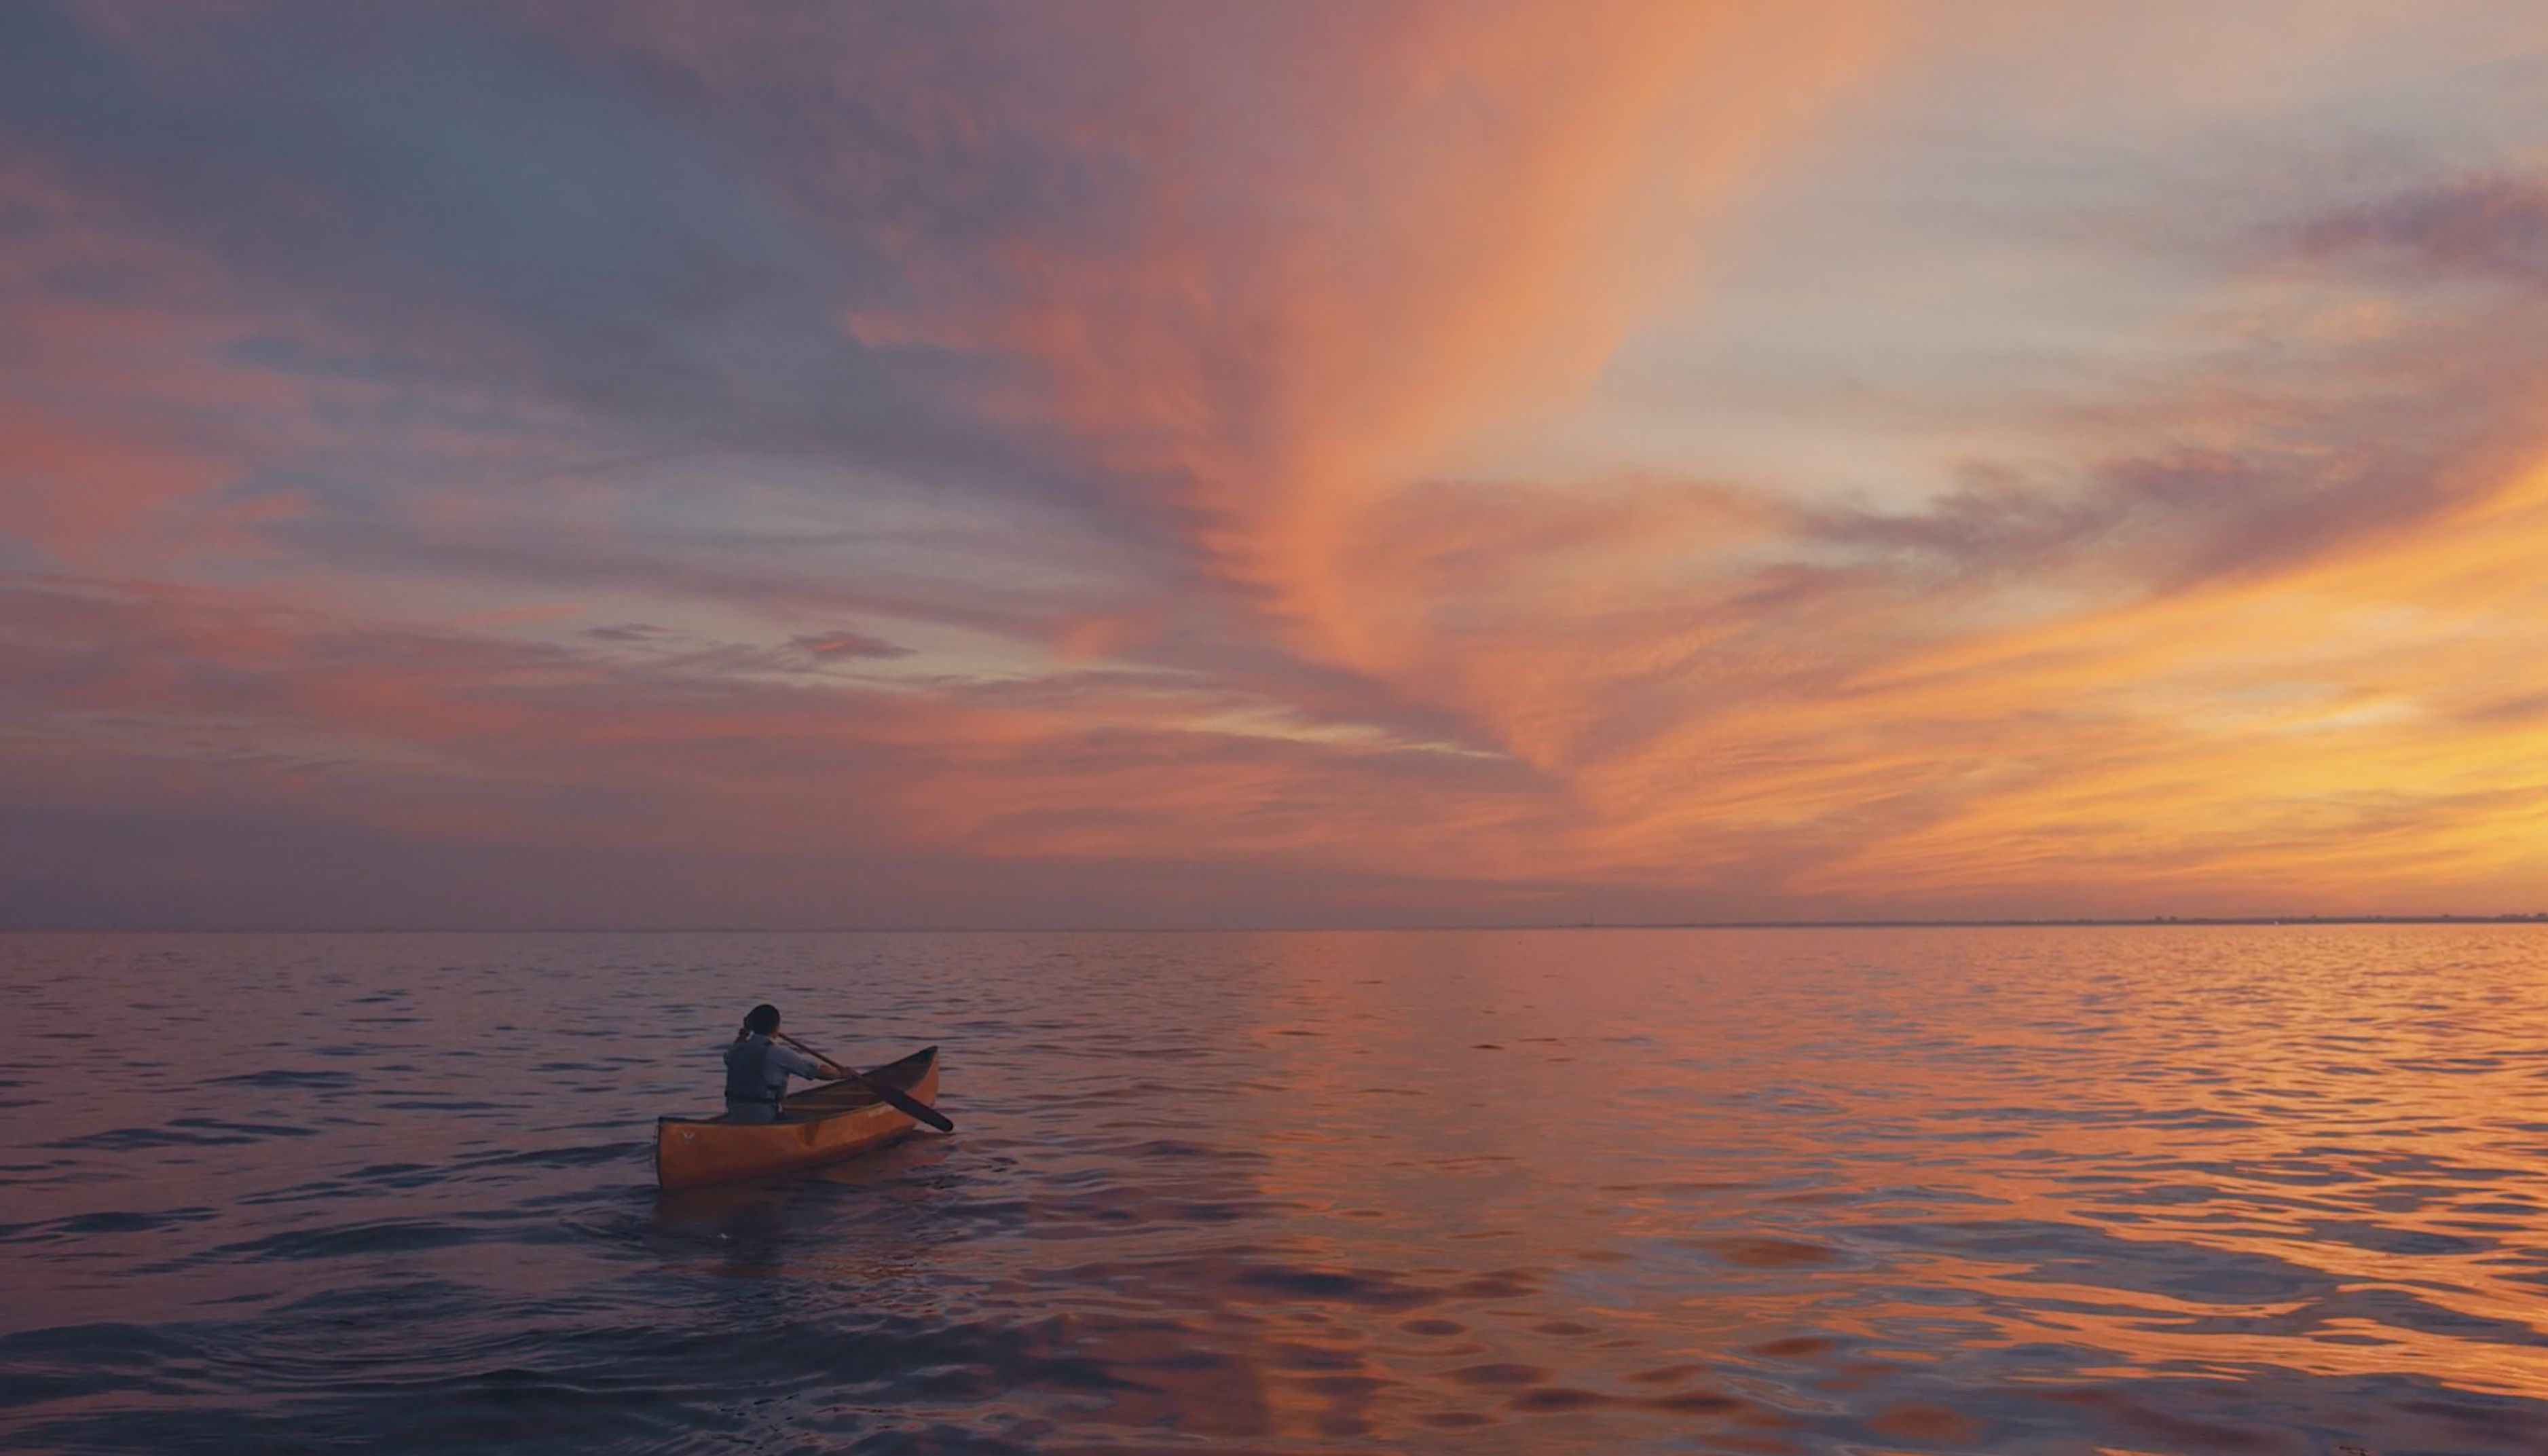 This Canoe Documentary Is Almost Too Beautiful to Watch